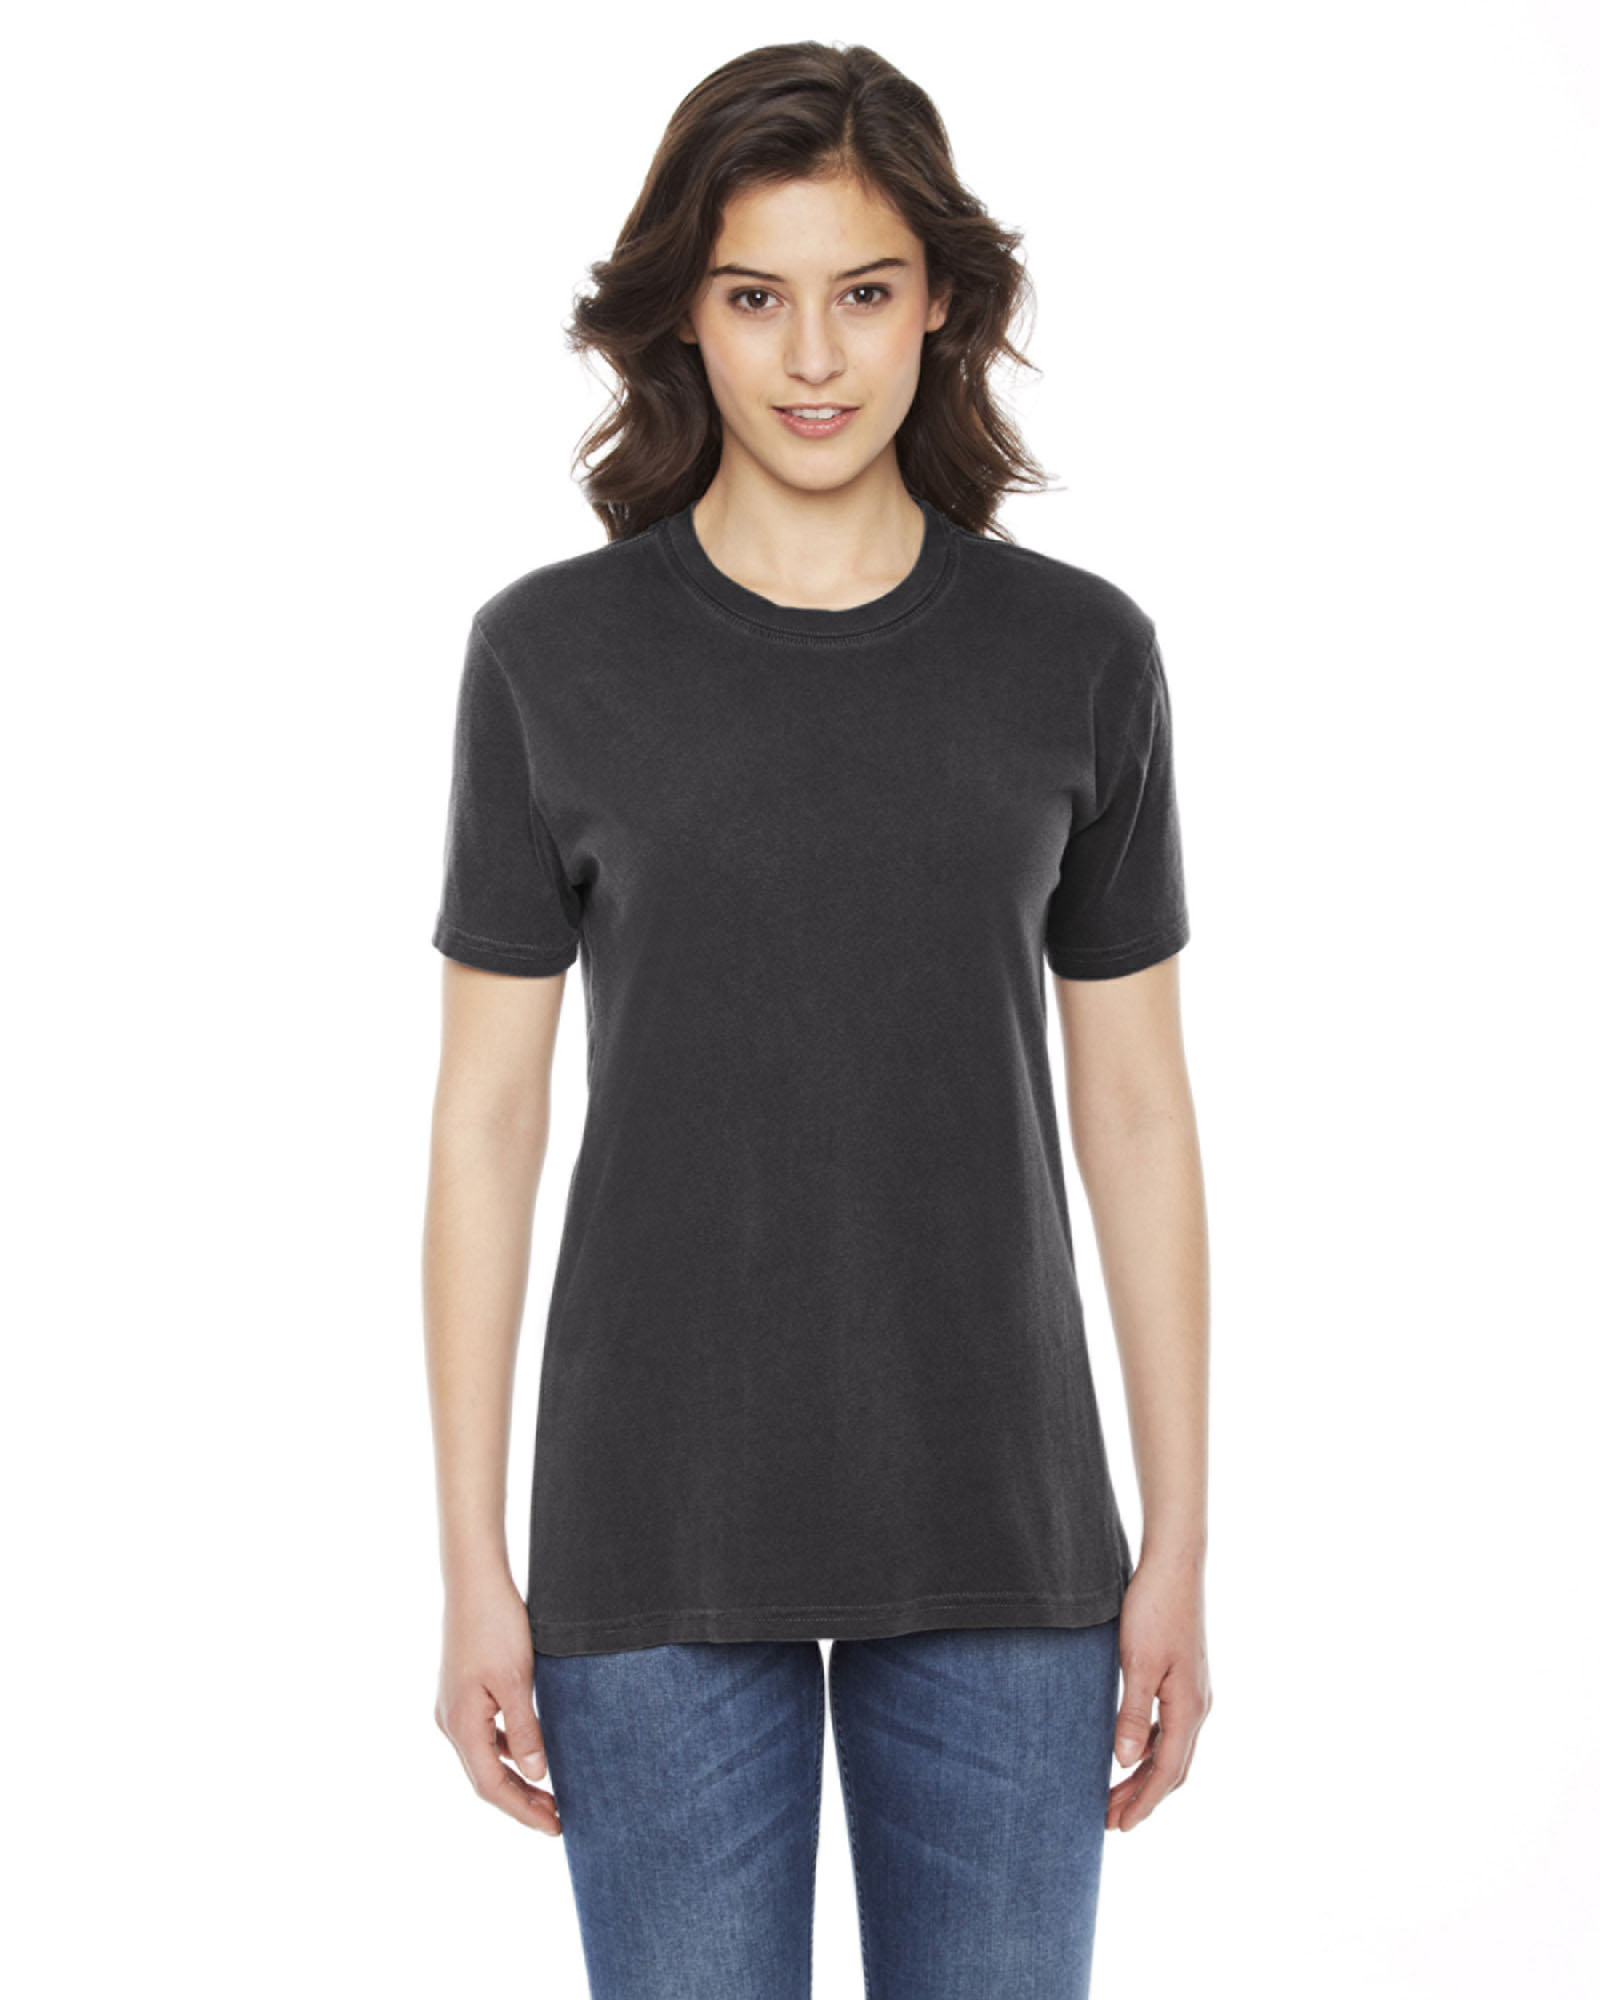 Authentic Pigment AP200W - Ladies' XtraFine T-Shirt